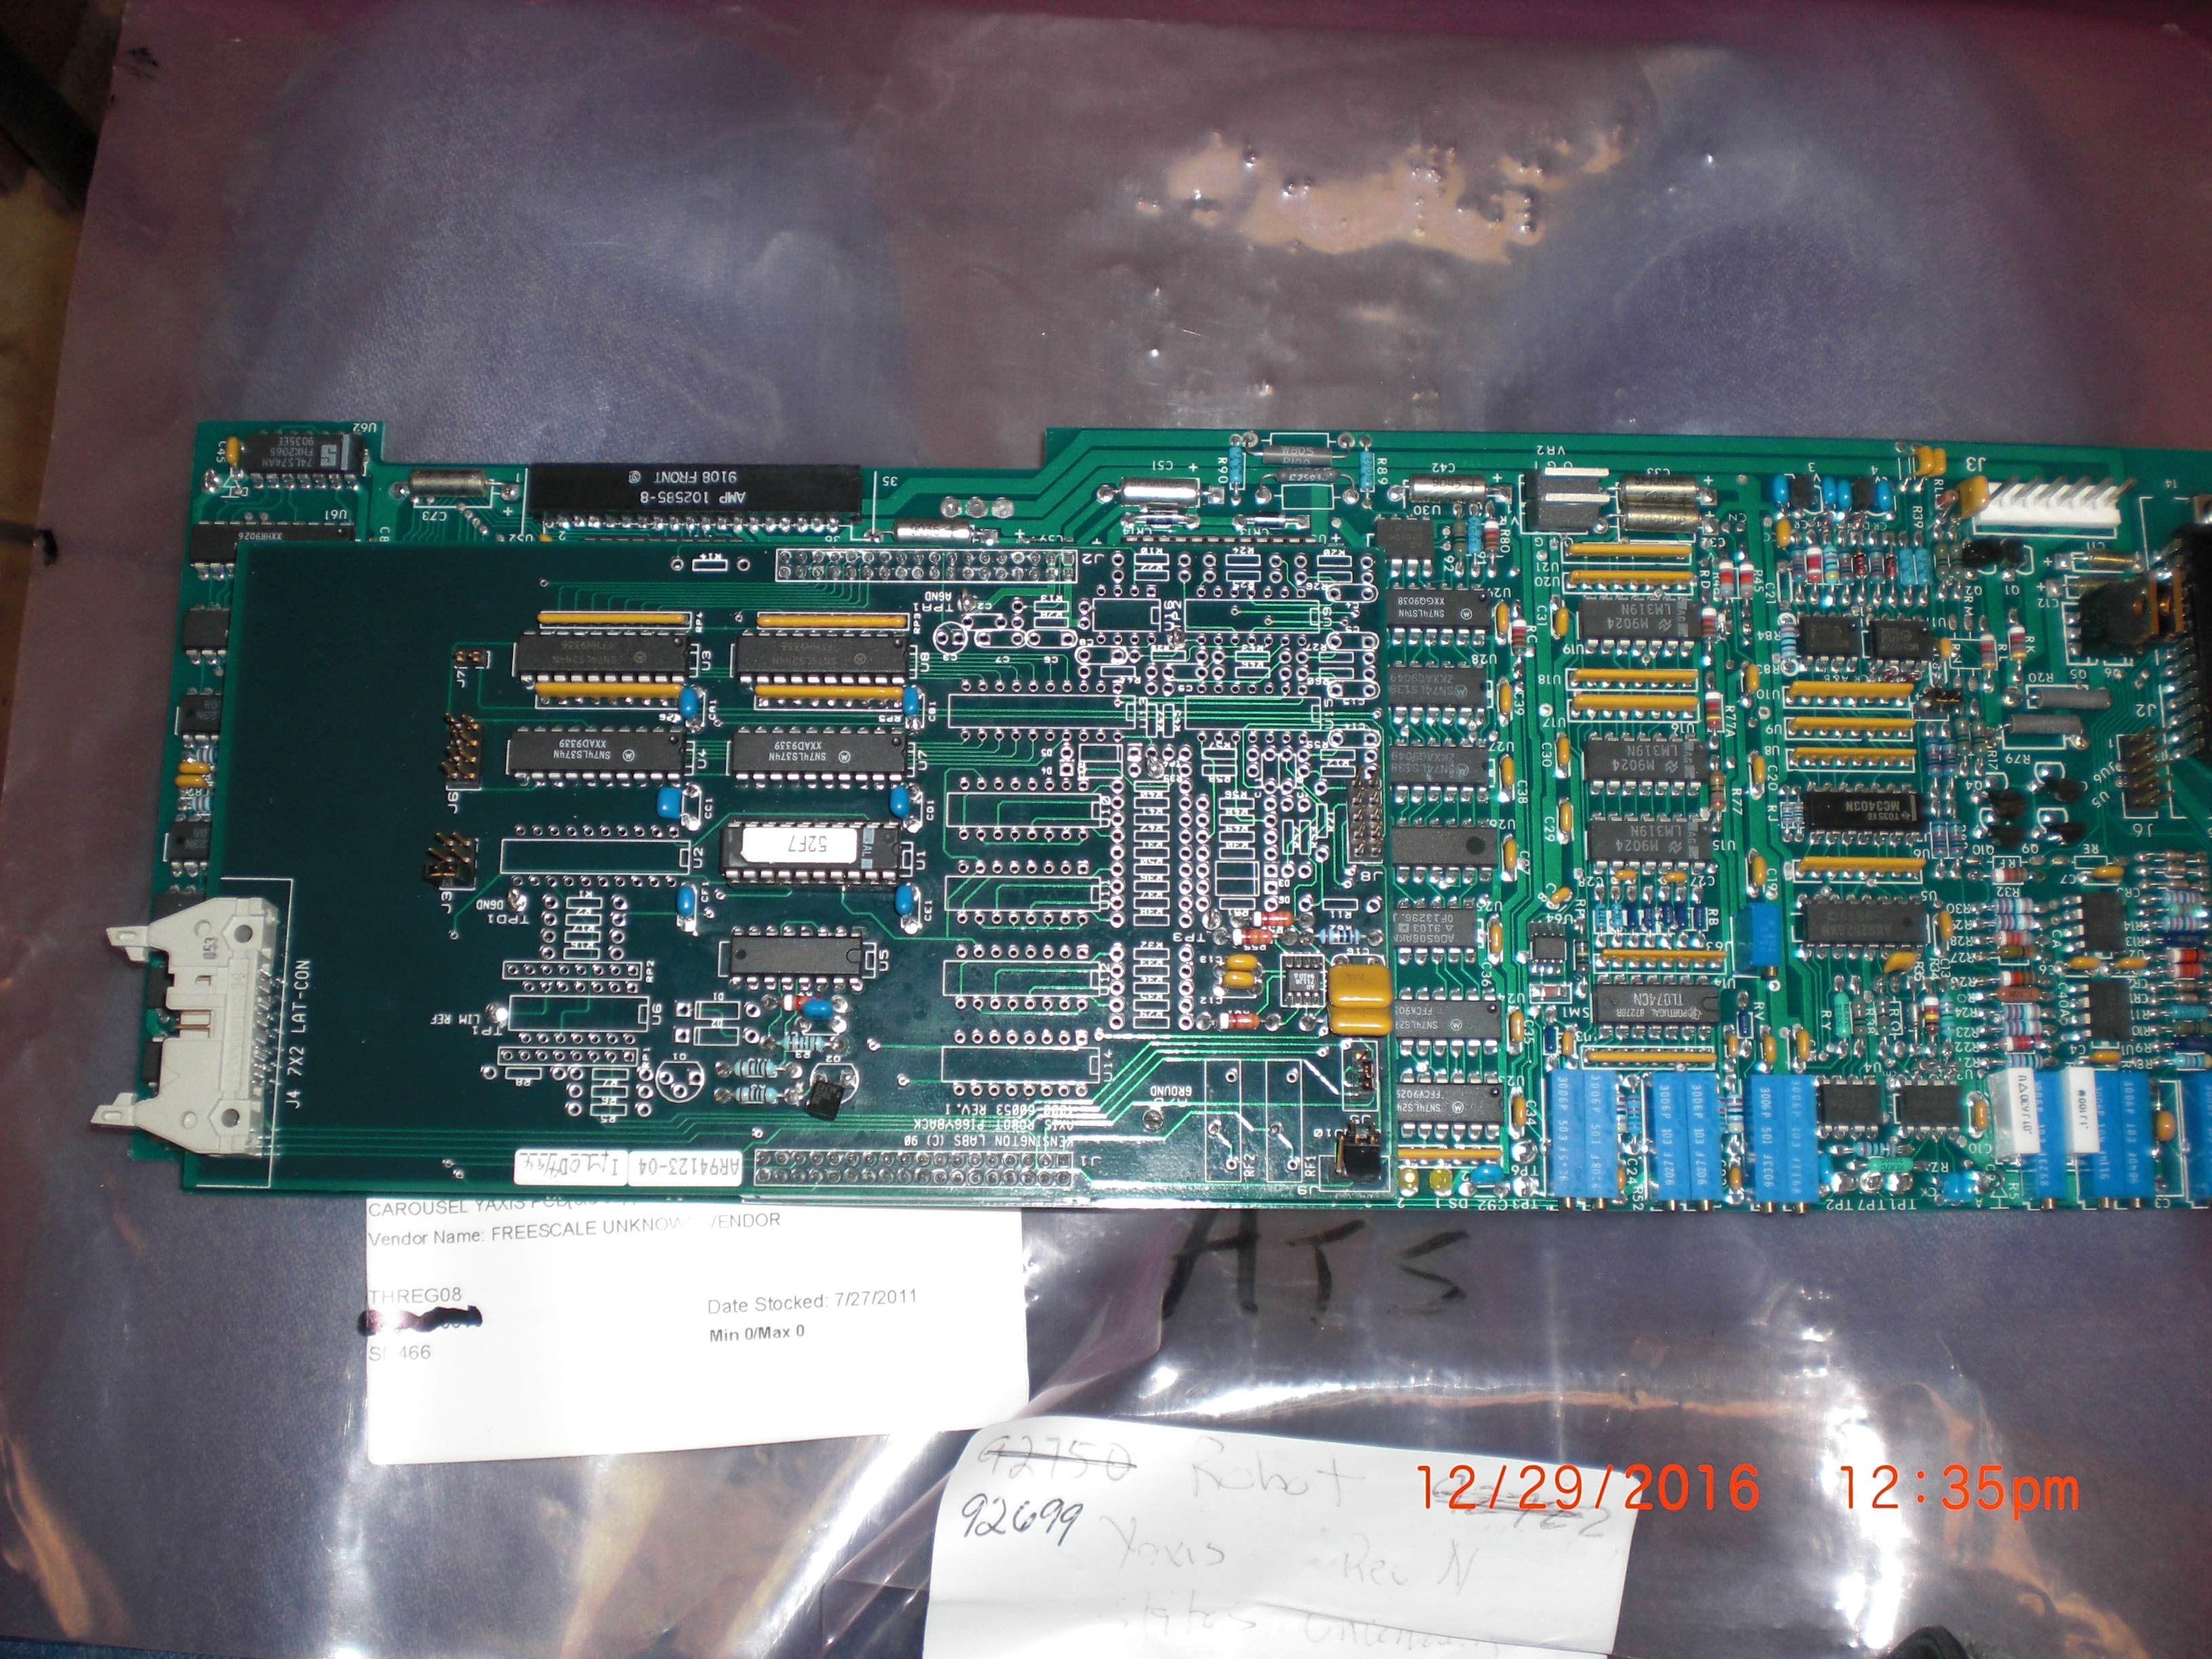 PCB KENSINGTON HR91205-08 Y-Axis TTL/RH PCB w/4000-60053 piggy back